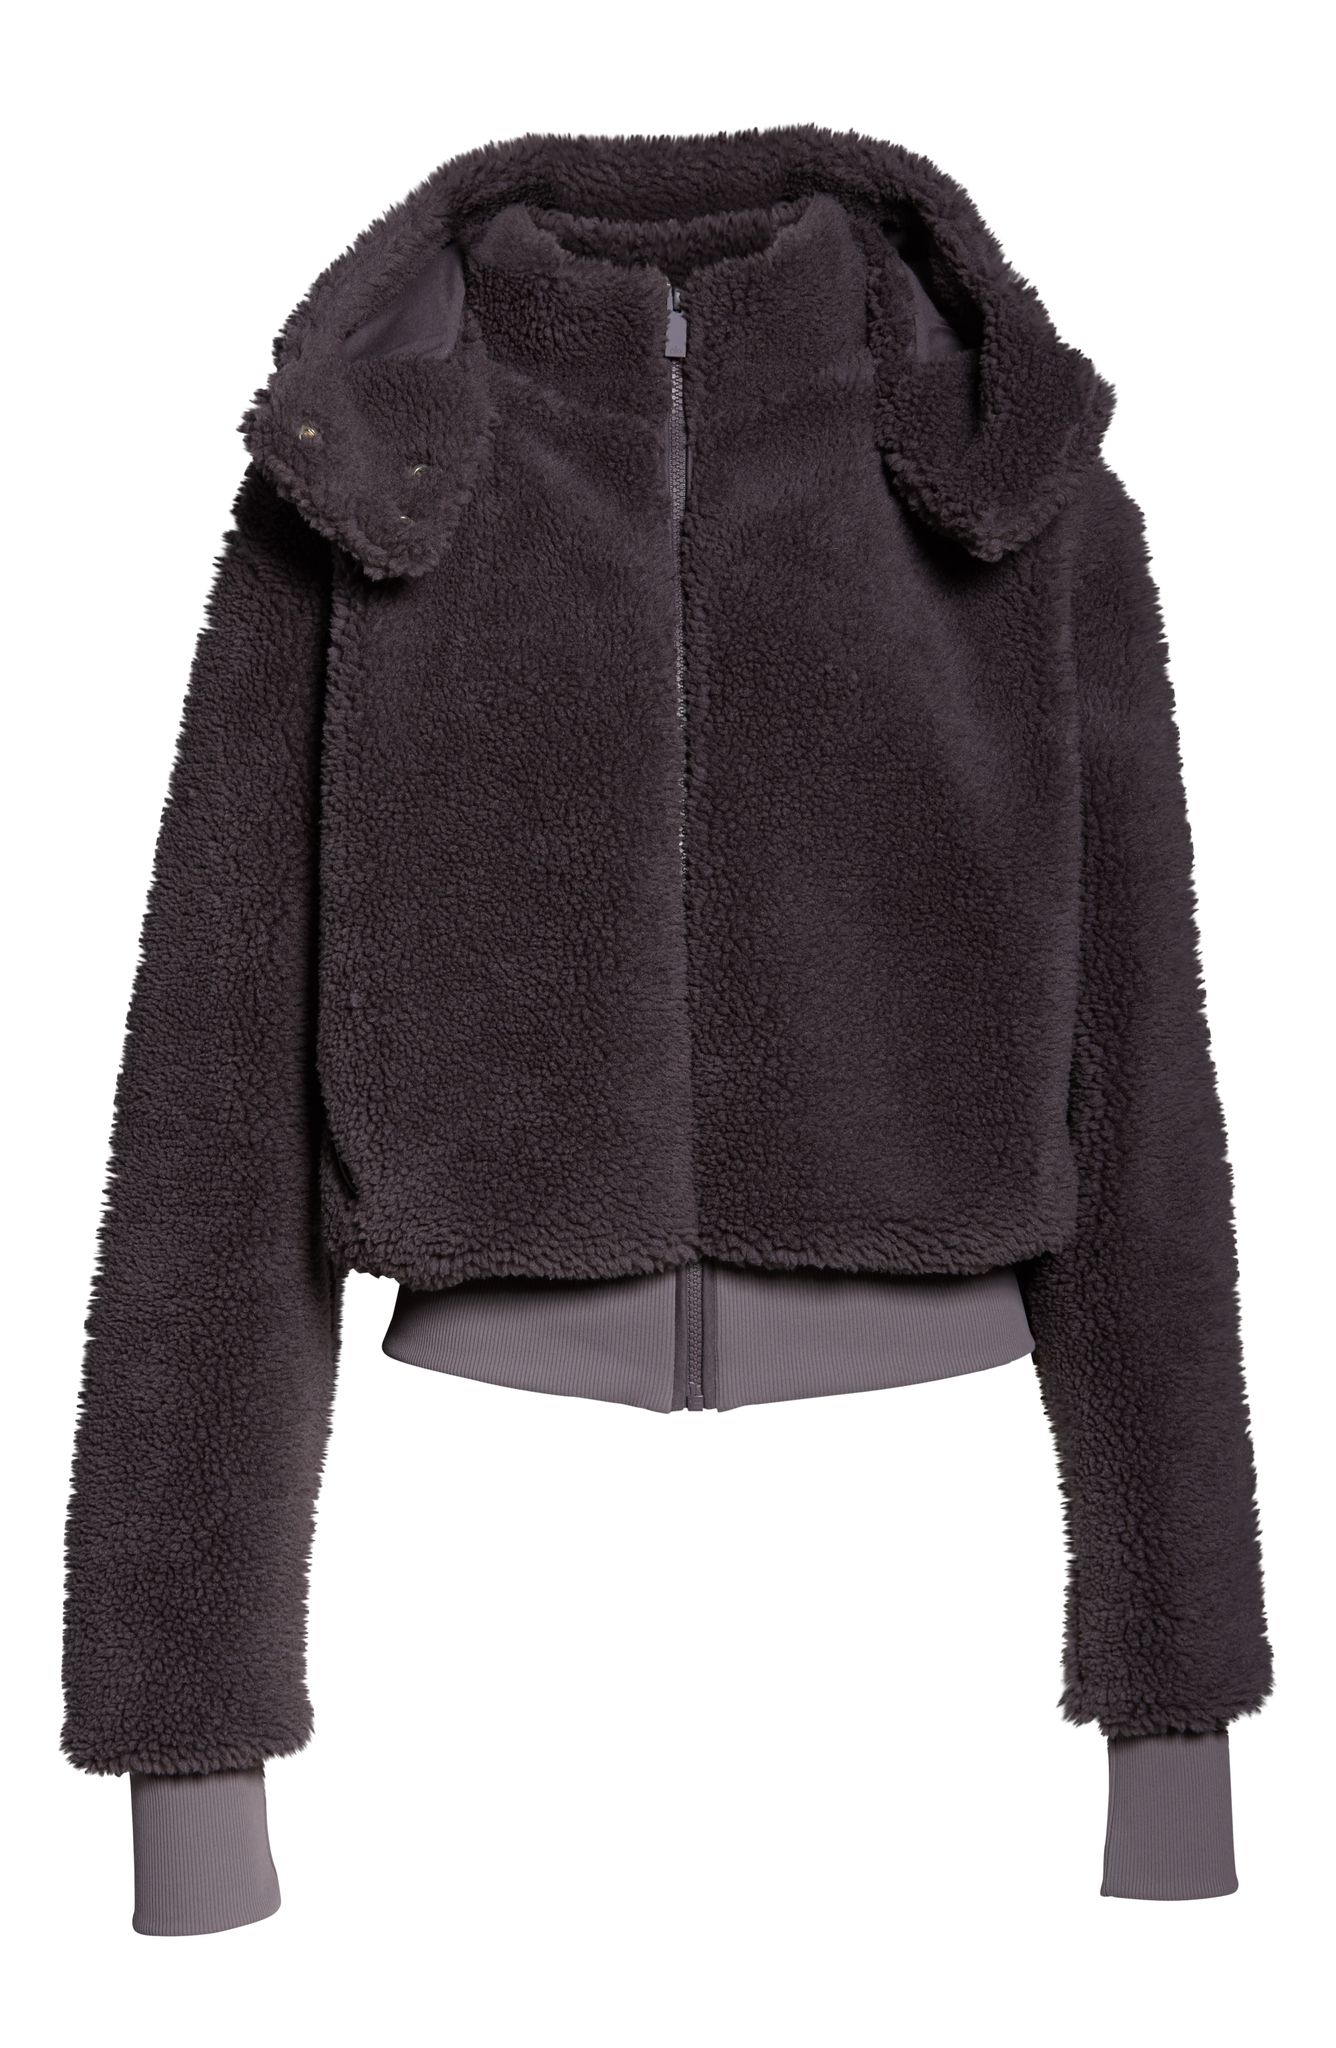 Alo Foxy Sherpa Jacket (normally $188): NOW $124.90 (Image: Nordstrom){ }